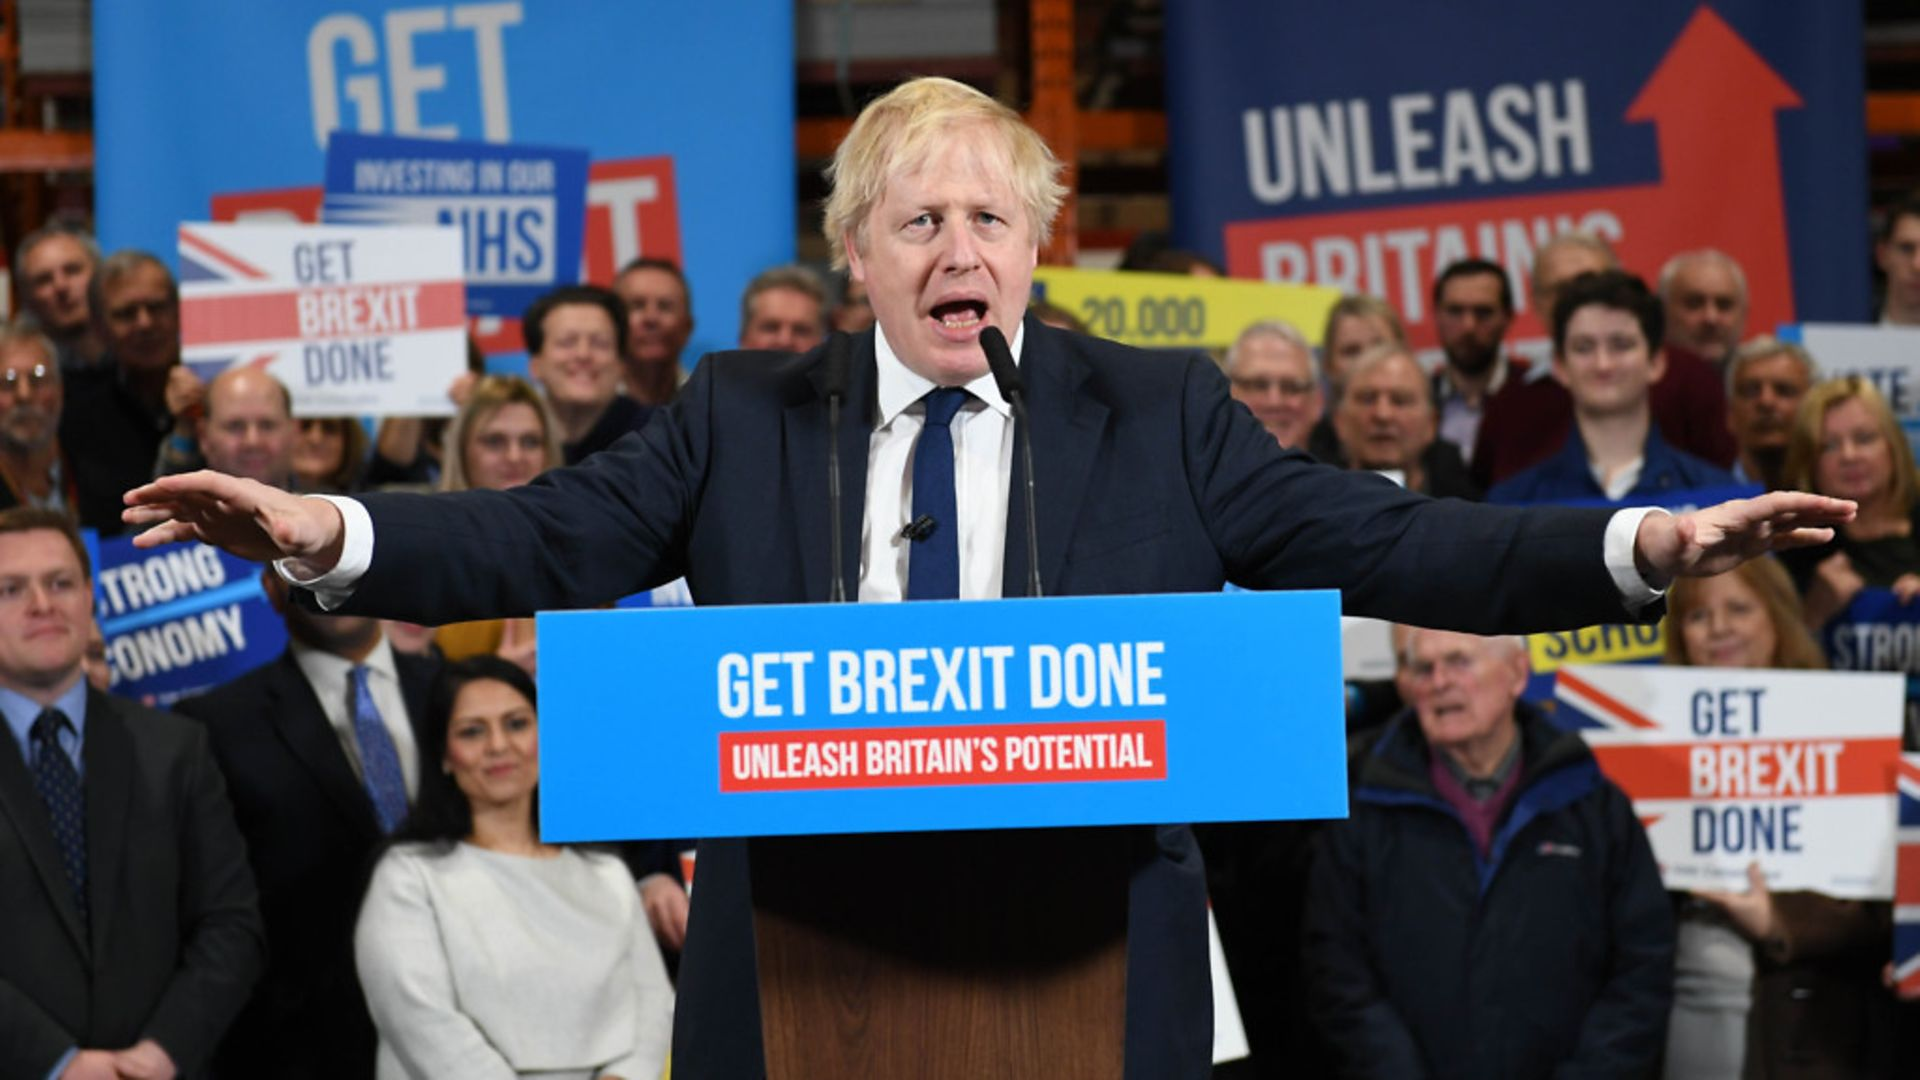 Boris Johnson during the election campaign - Credit: PA Wire/PA Images